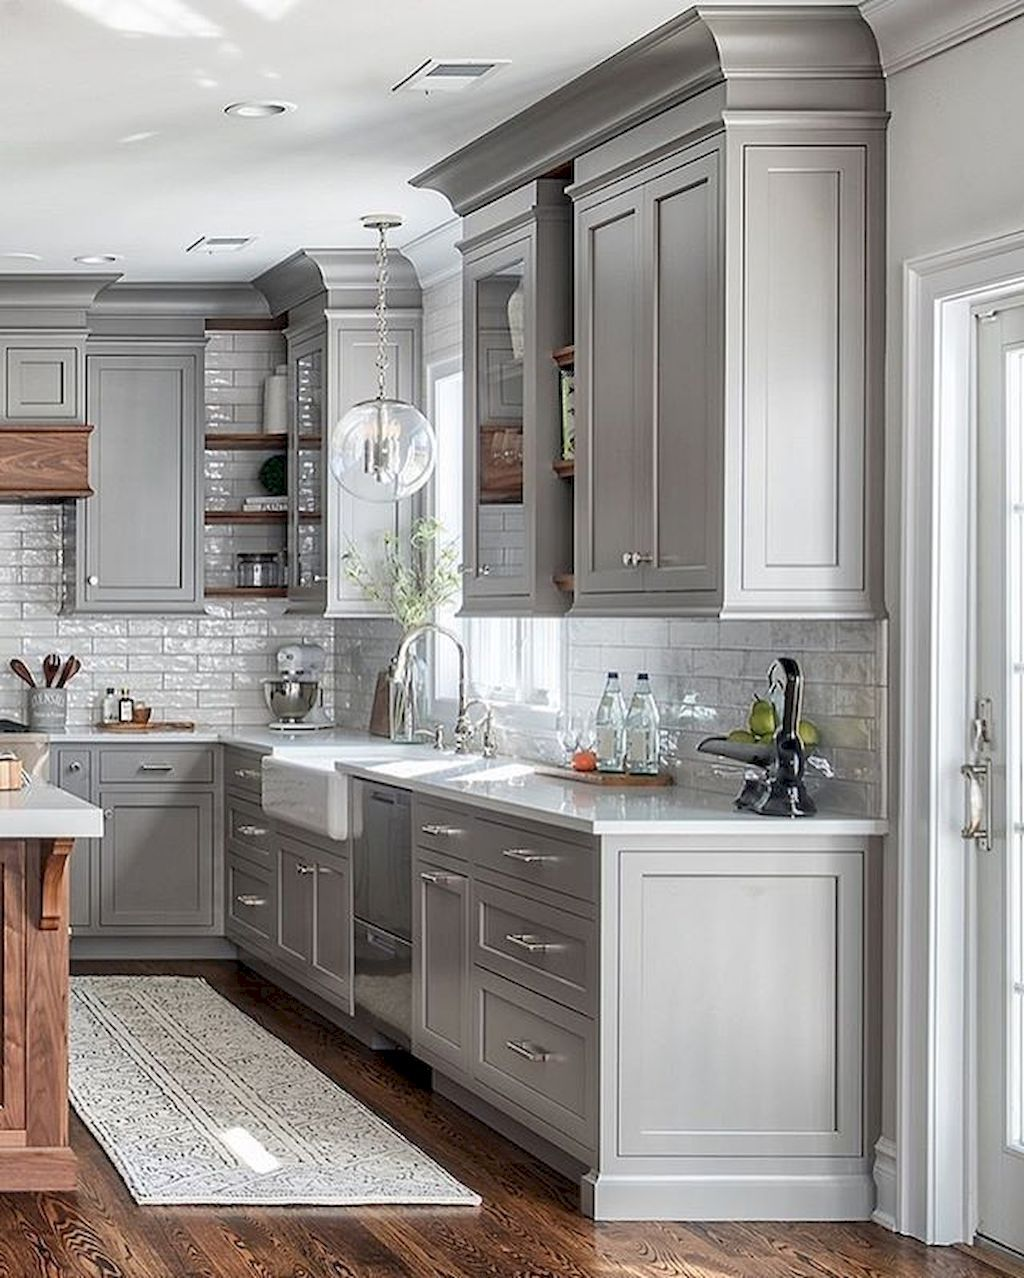 cool 59 awesome gray kitchen cabinet design ideas https homespecially com 59 awesome gray on kitchen decor grey cabinets id=63485